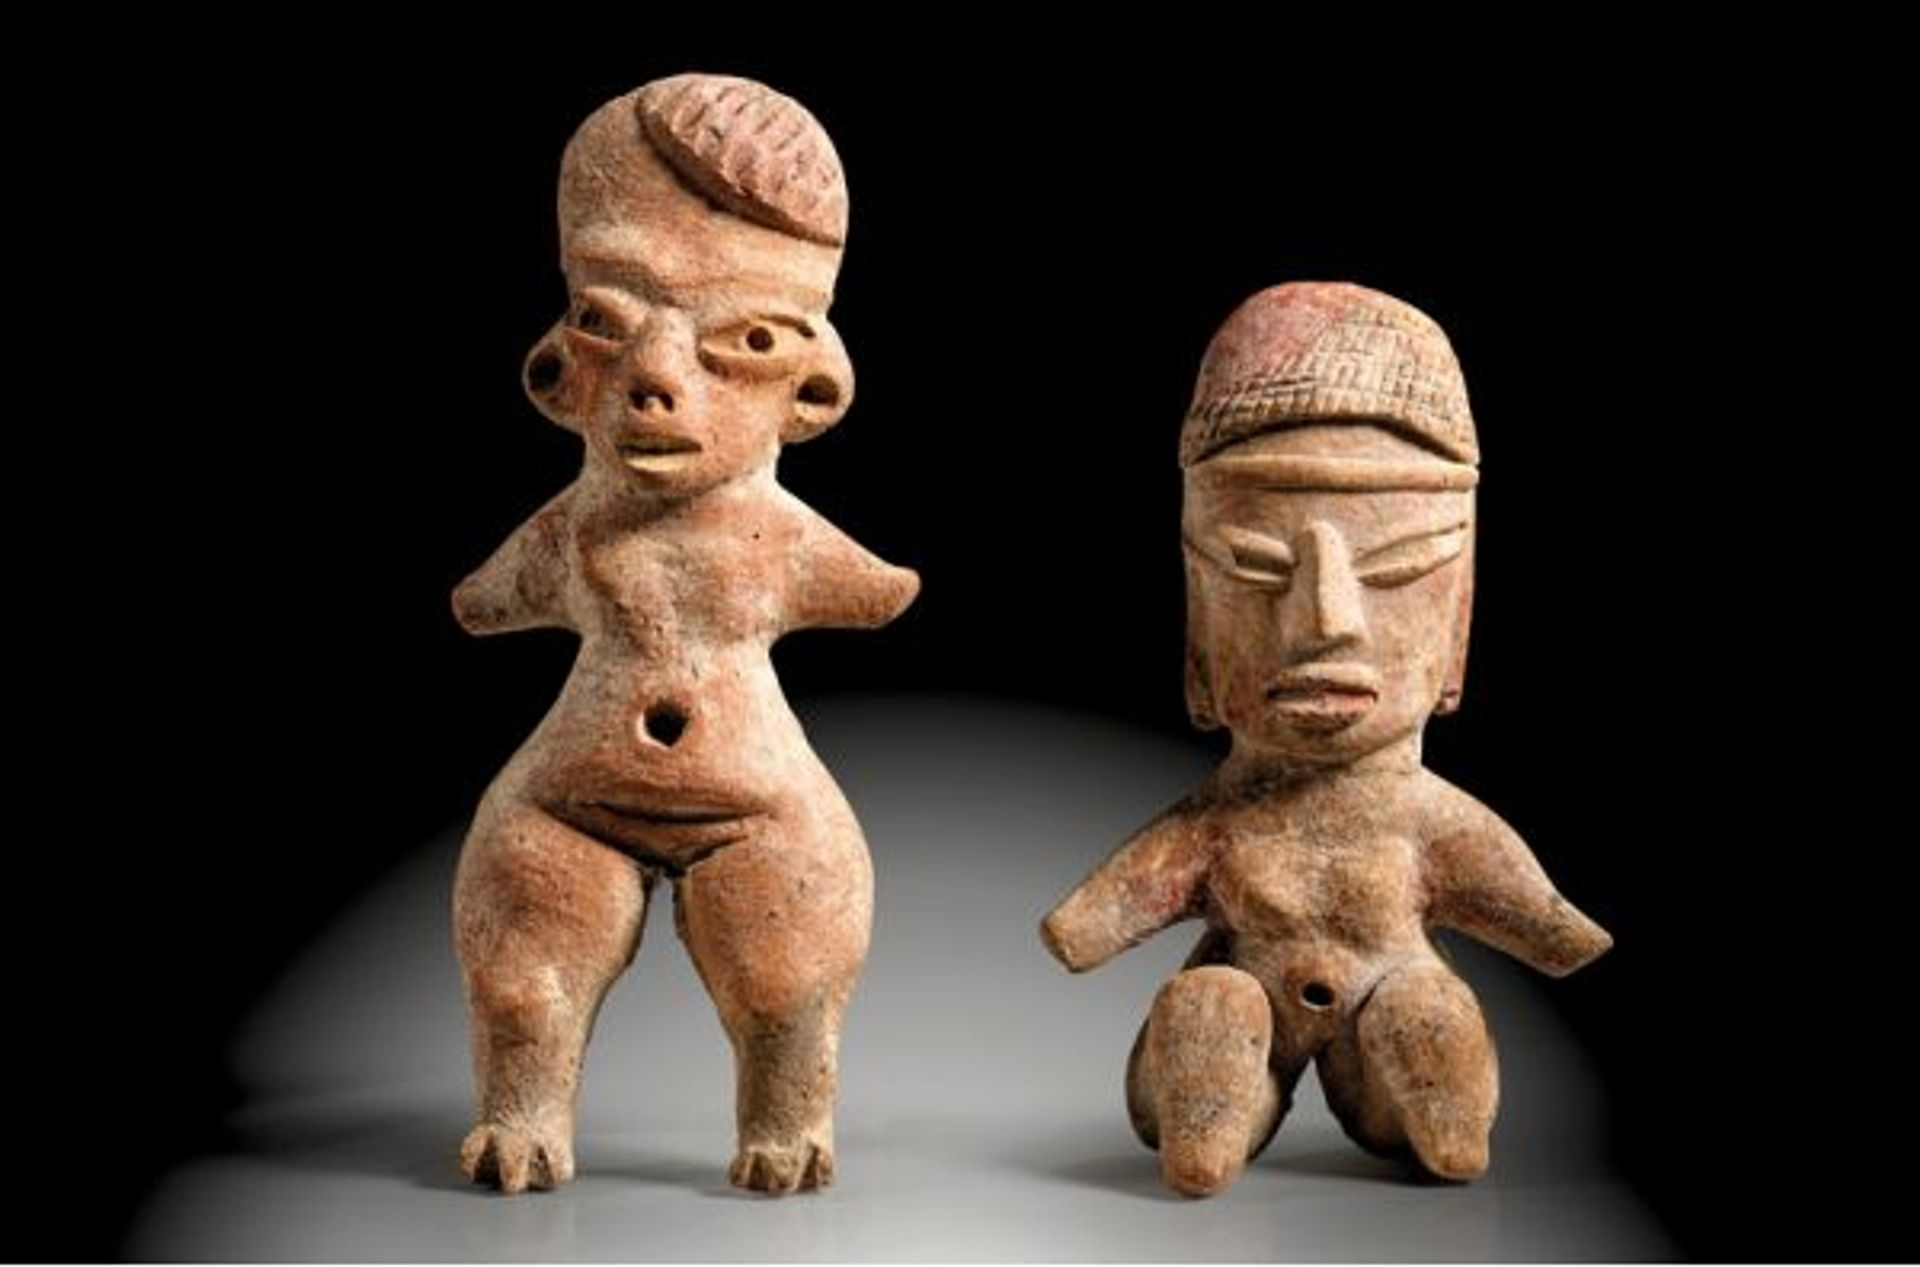 Two female figures made of reddish clay from Tlatilco in the Mexican Central Highlands, around 1500-550 BC, being offered for sale at Gerhard Hirsch Nachfolger with an estimate of € 3,000